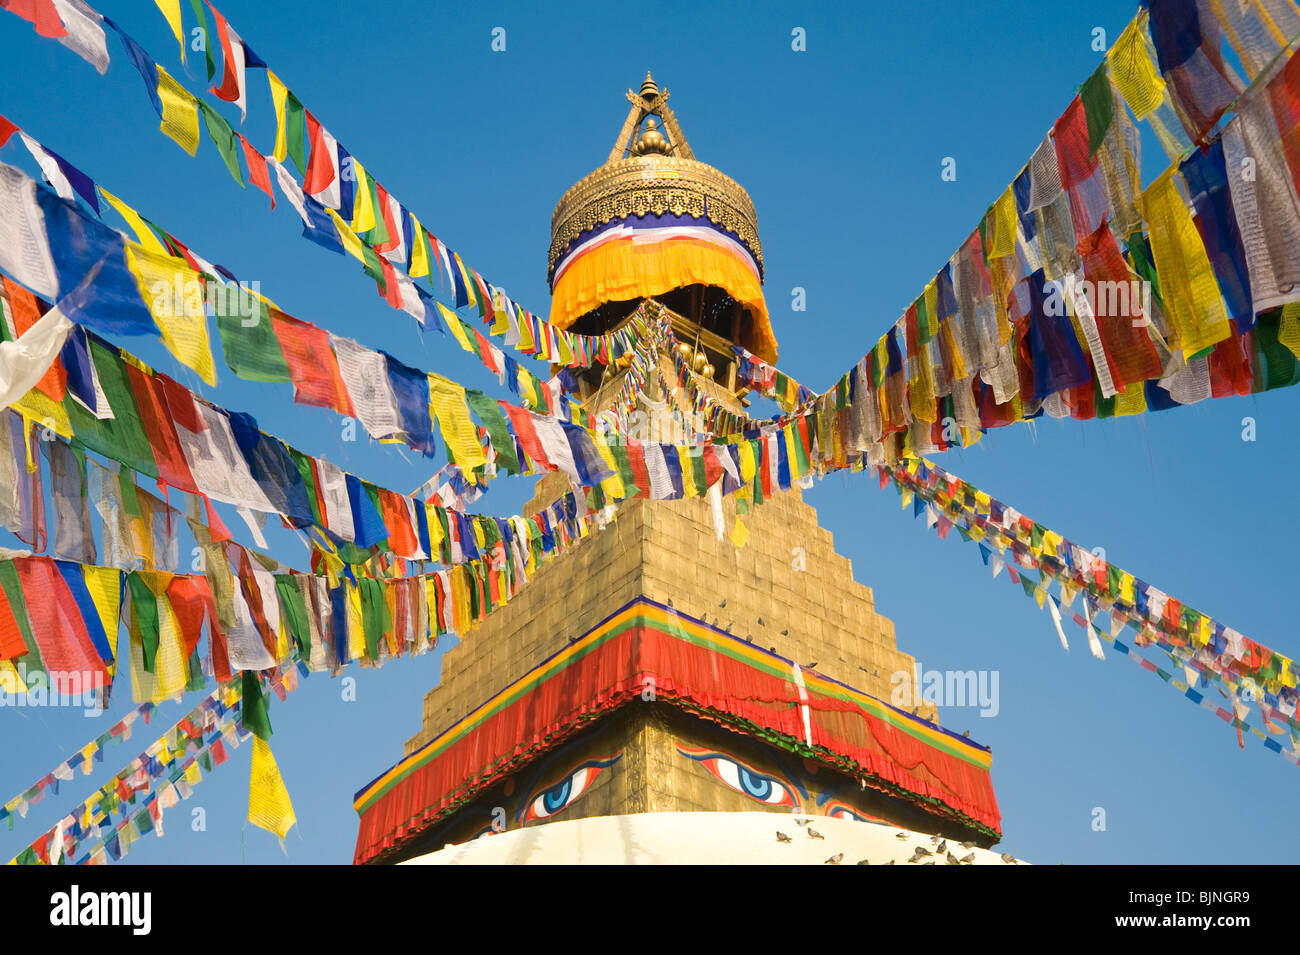 The top of Boudhanath stupa with many Tibetan prayer flags in Kathmandu, Nepal Stock Photo